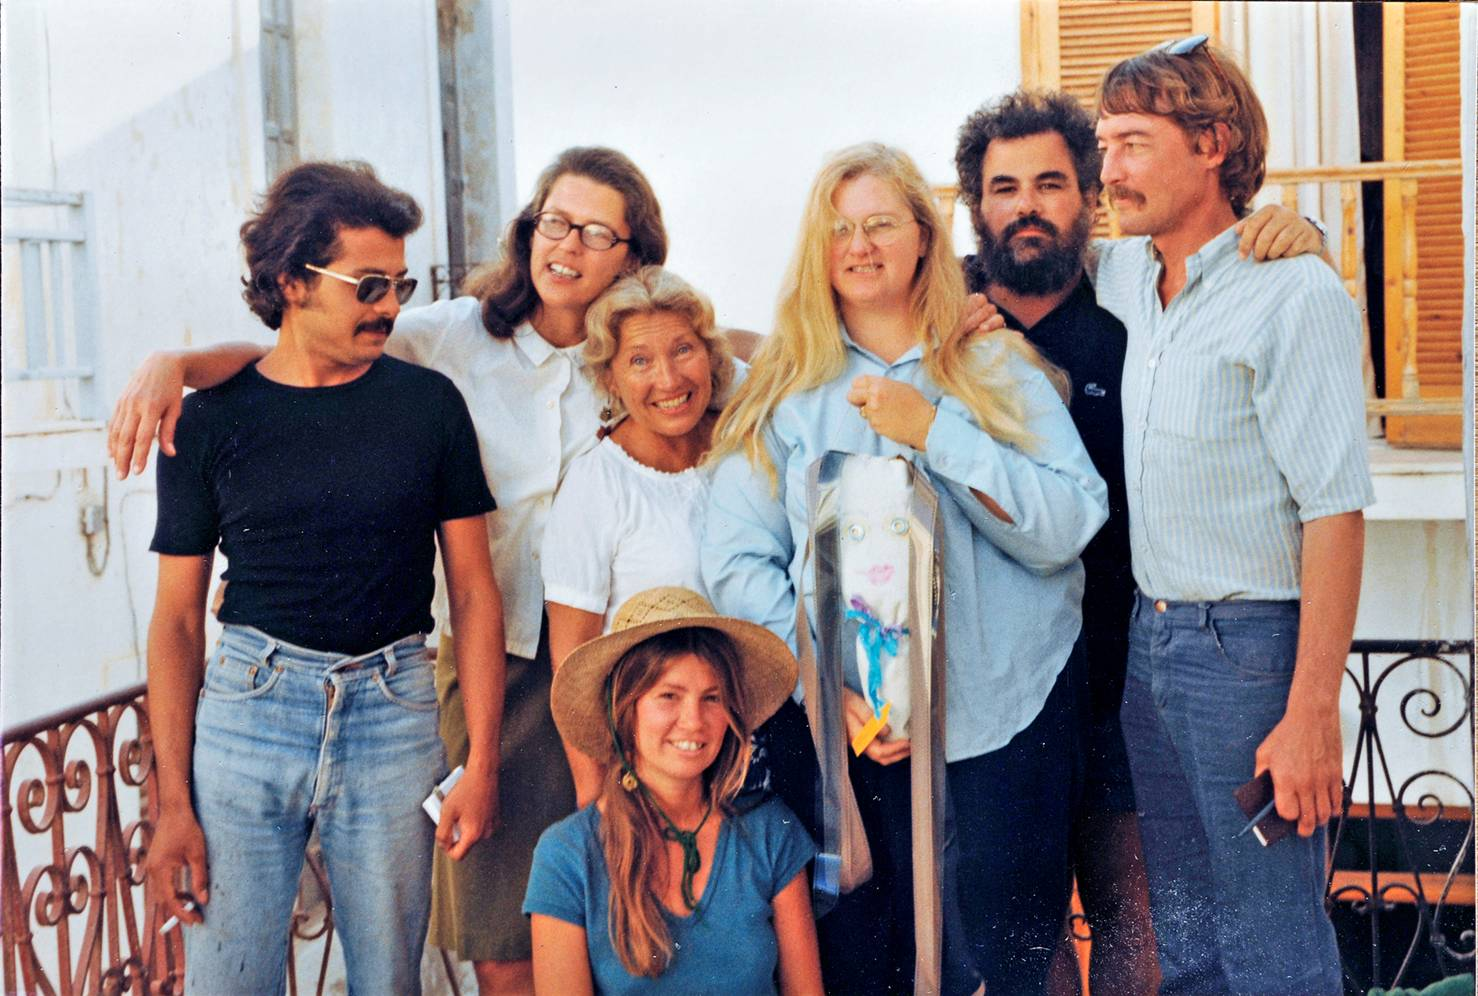 The Aegean School faculty in 1980, of Nick Loucas (painting teacher), Gail Wetzel (printmaker and administration), Gretchen Kiener (student), Elizabeth Carson (photography teacher), Jeffrey Carson (creative writing teacher), and Brett Taylor (director).